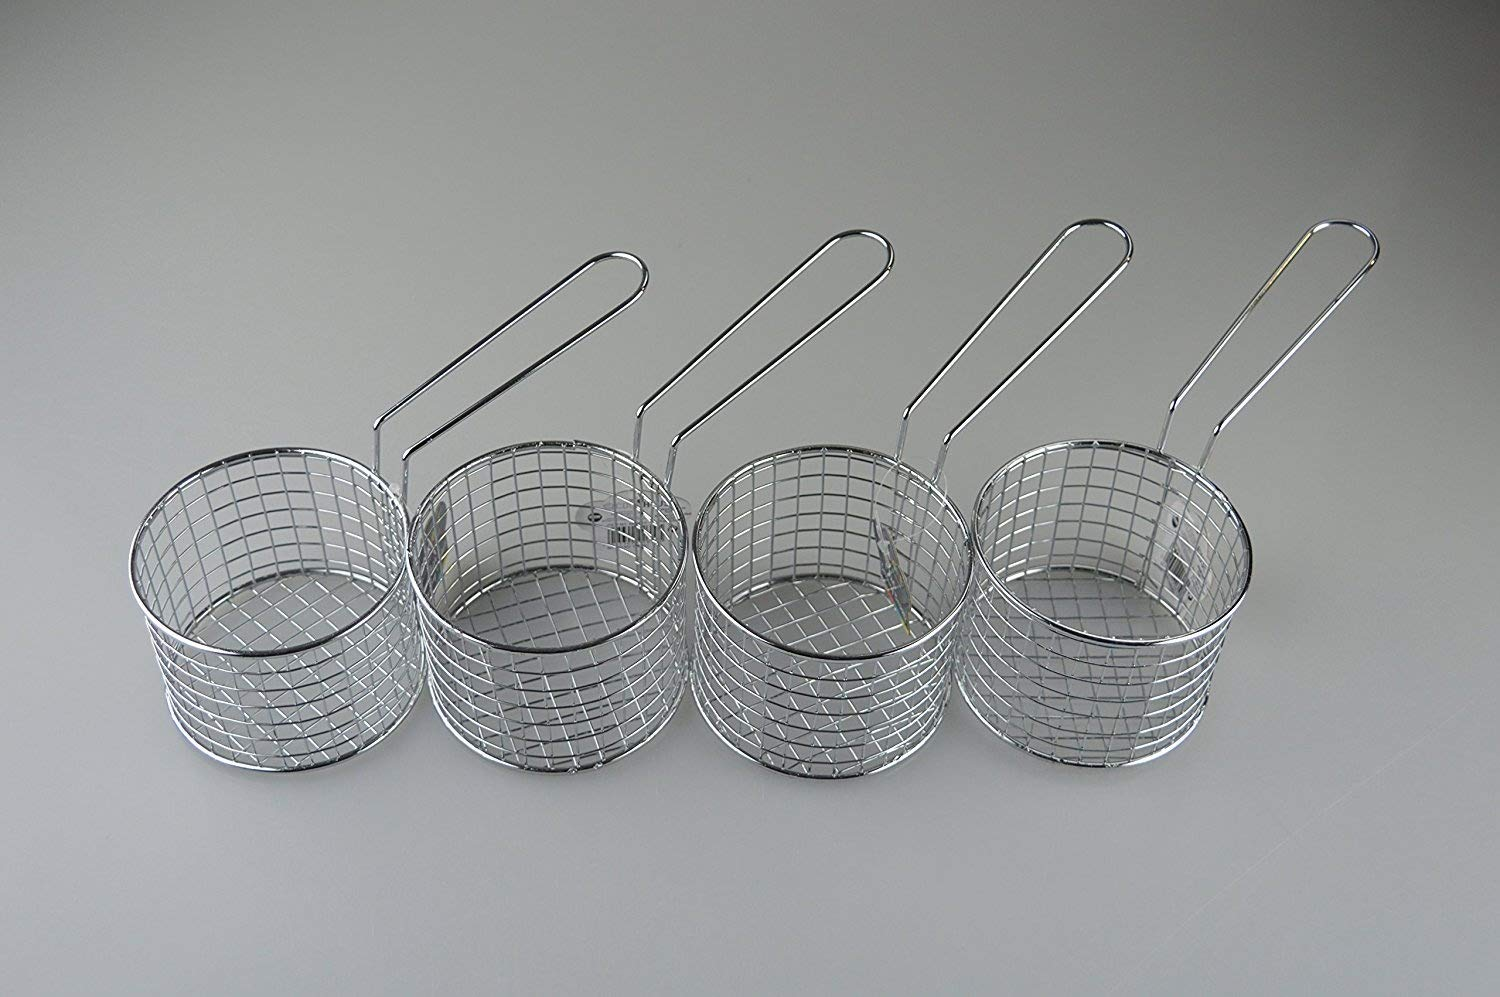 Chip Serving Basket Set of 4 Mini Bucket Fryer Pan Modern Bistro Style Presentation for French Fries, Onion Rings, Potato Wedges etc. Great for Tapas Dinner Party RSW